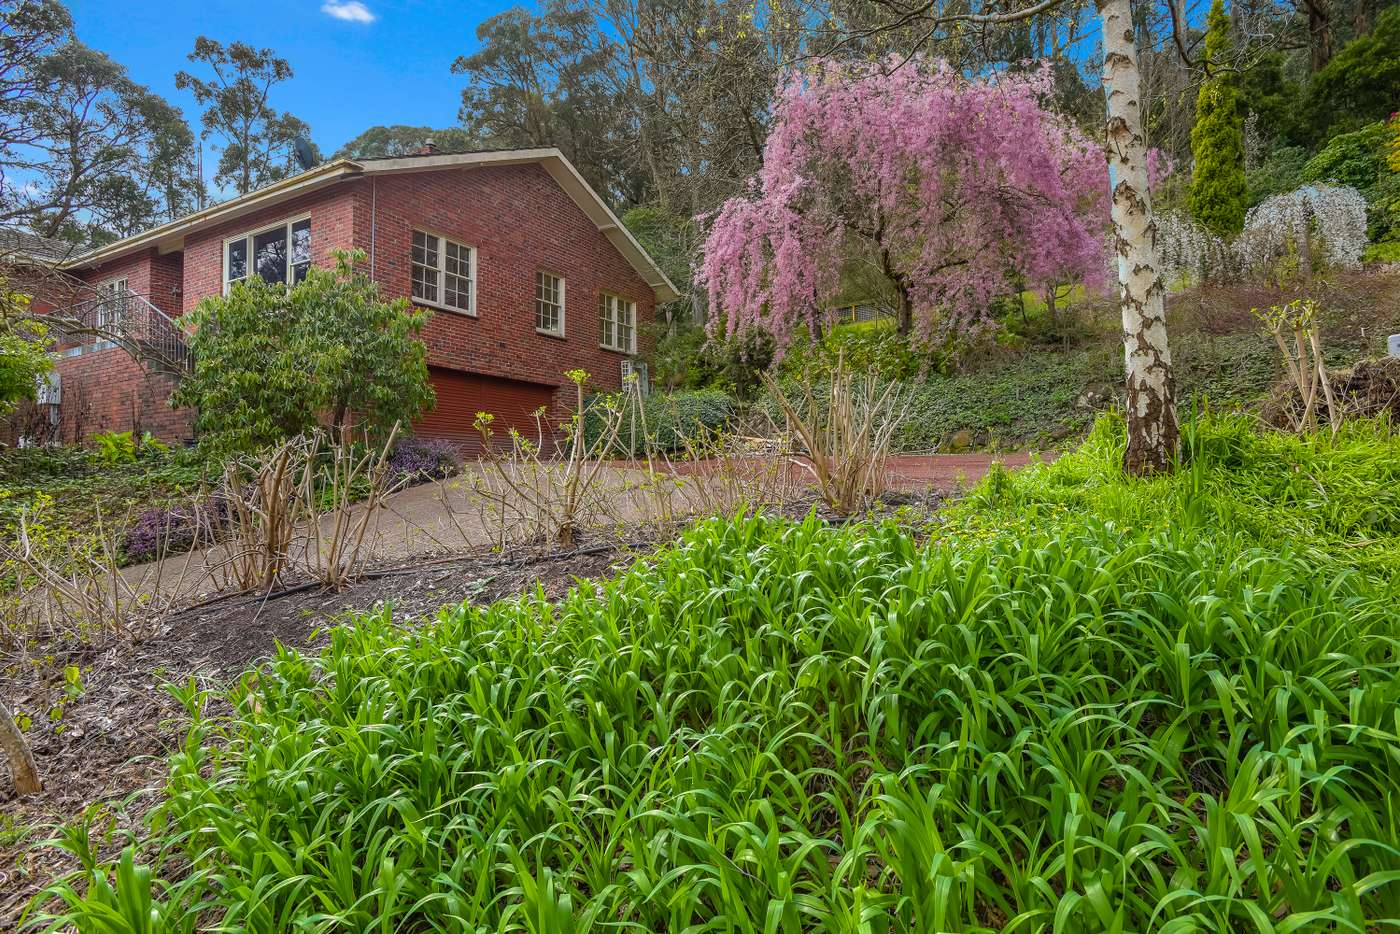 Main view of Homely house listing, 74 Douglas Road, Mount Macedon VIC 3441